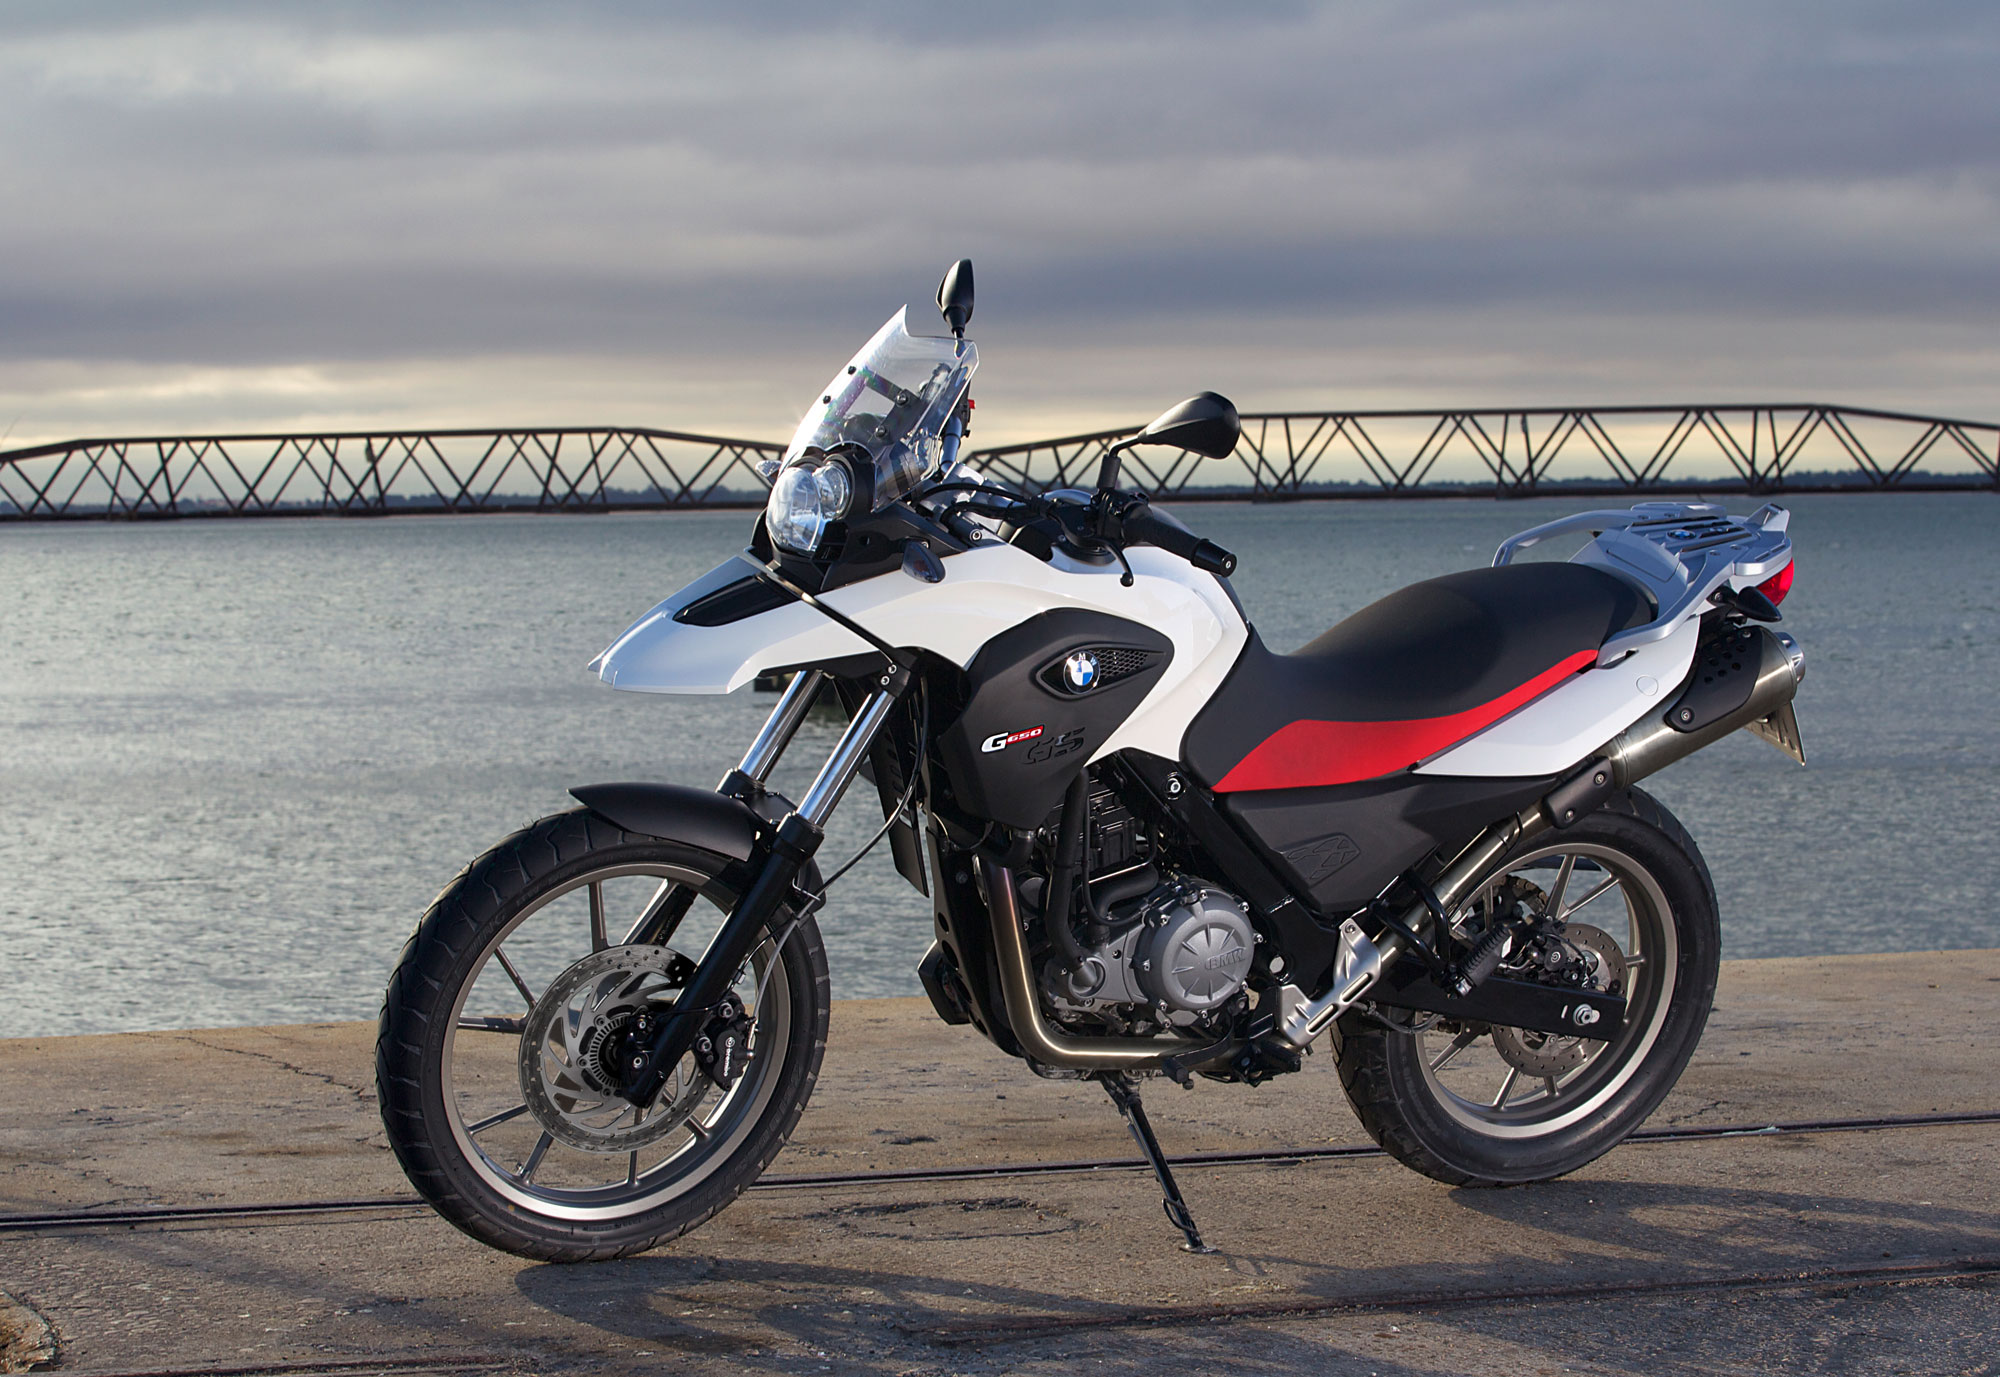 BMW G 650 GS images #8865